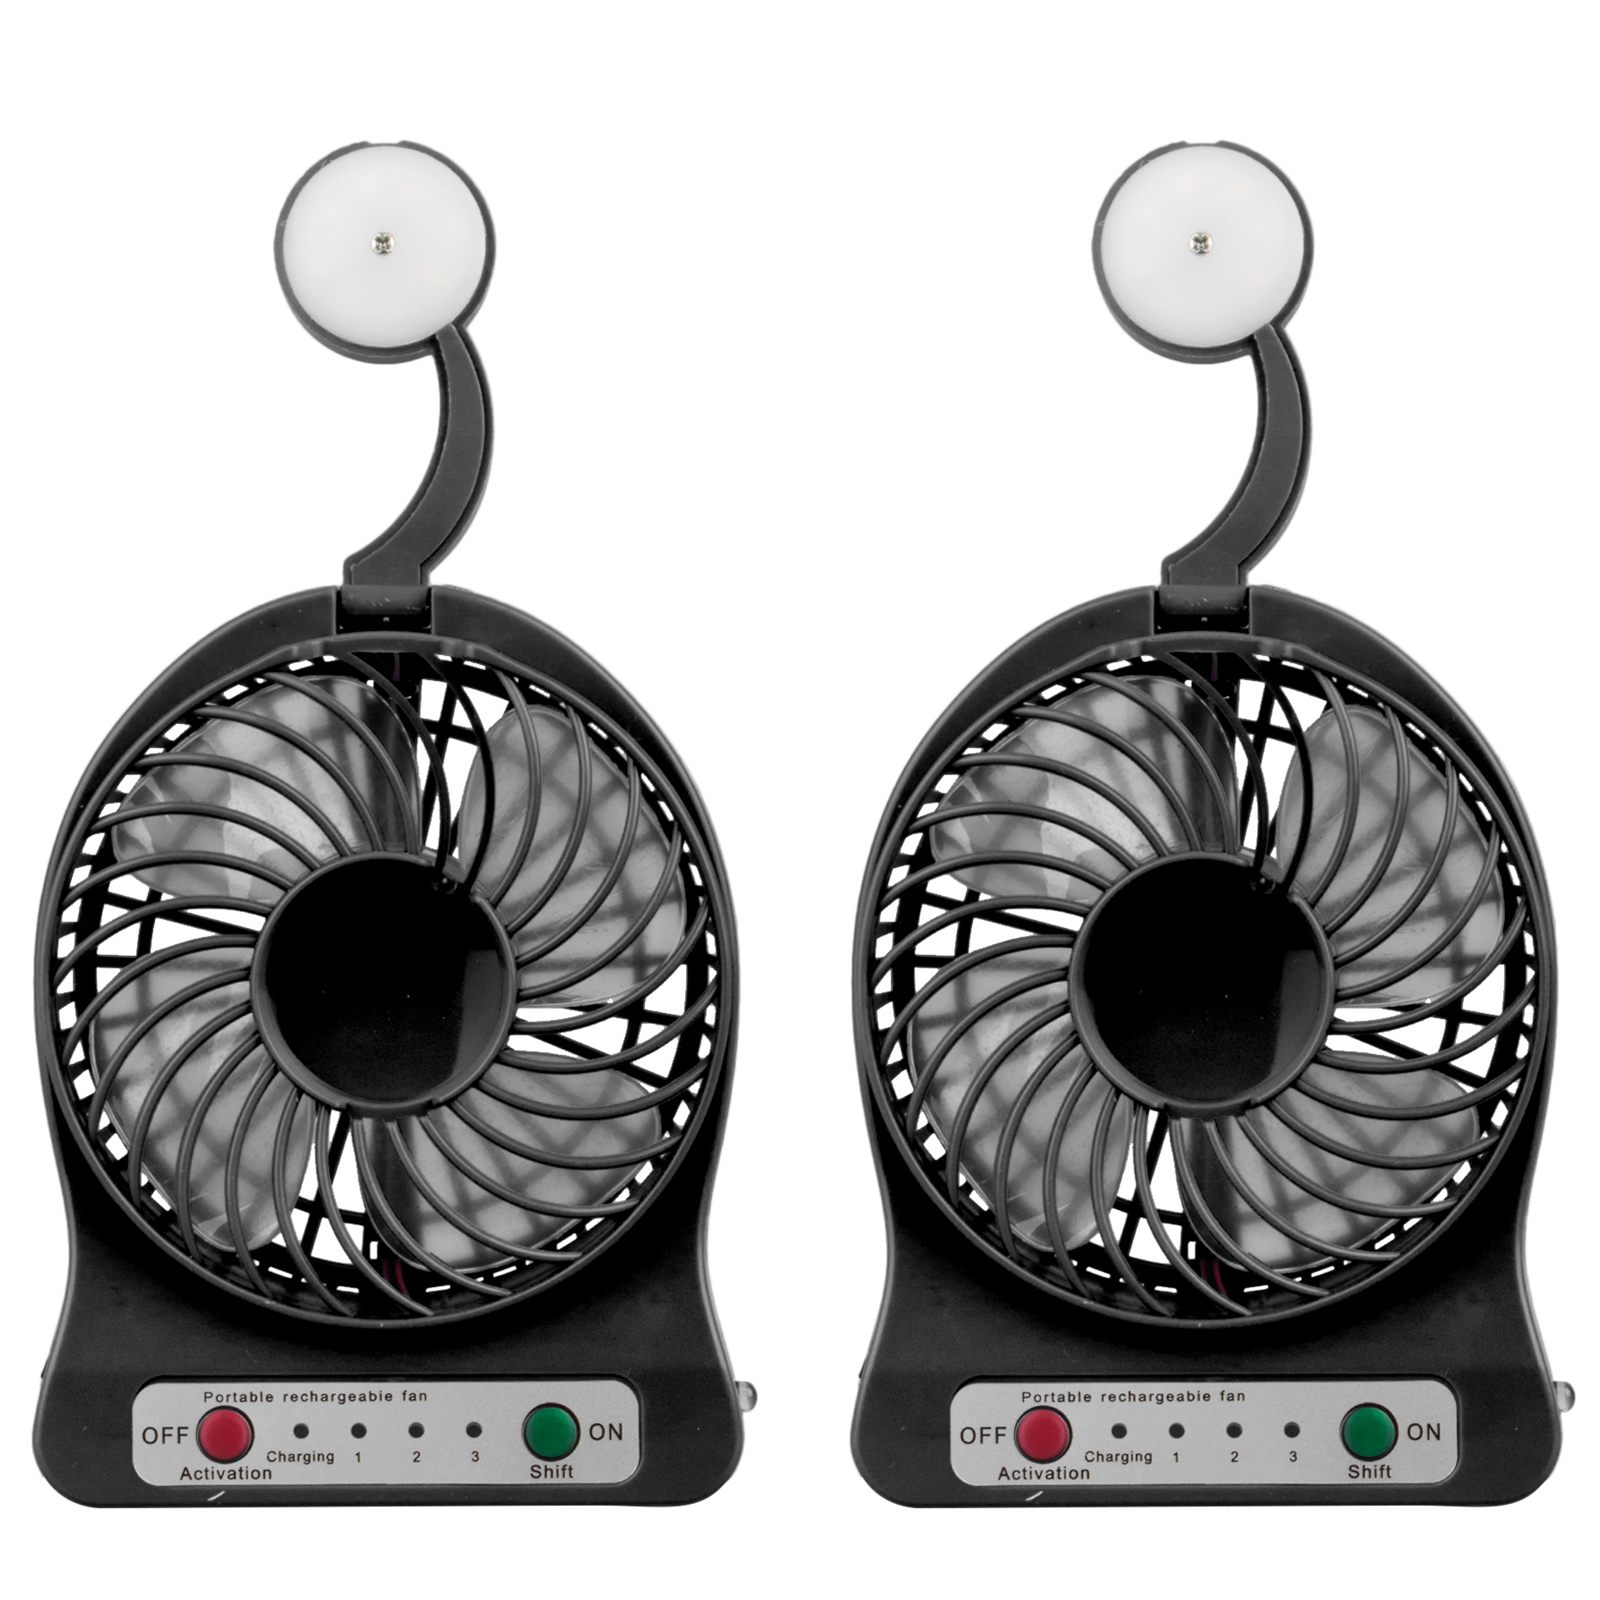 2-pack Portable 2 in 1 Mini USB Quiet Cooling Fan with LED light, include 1200mAh Rechargeable Battery